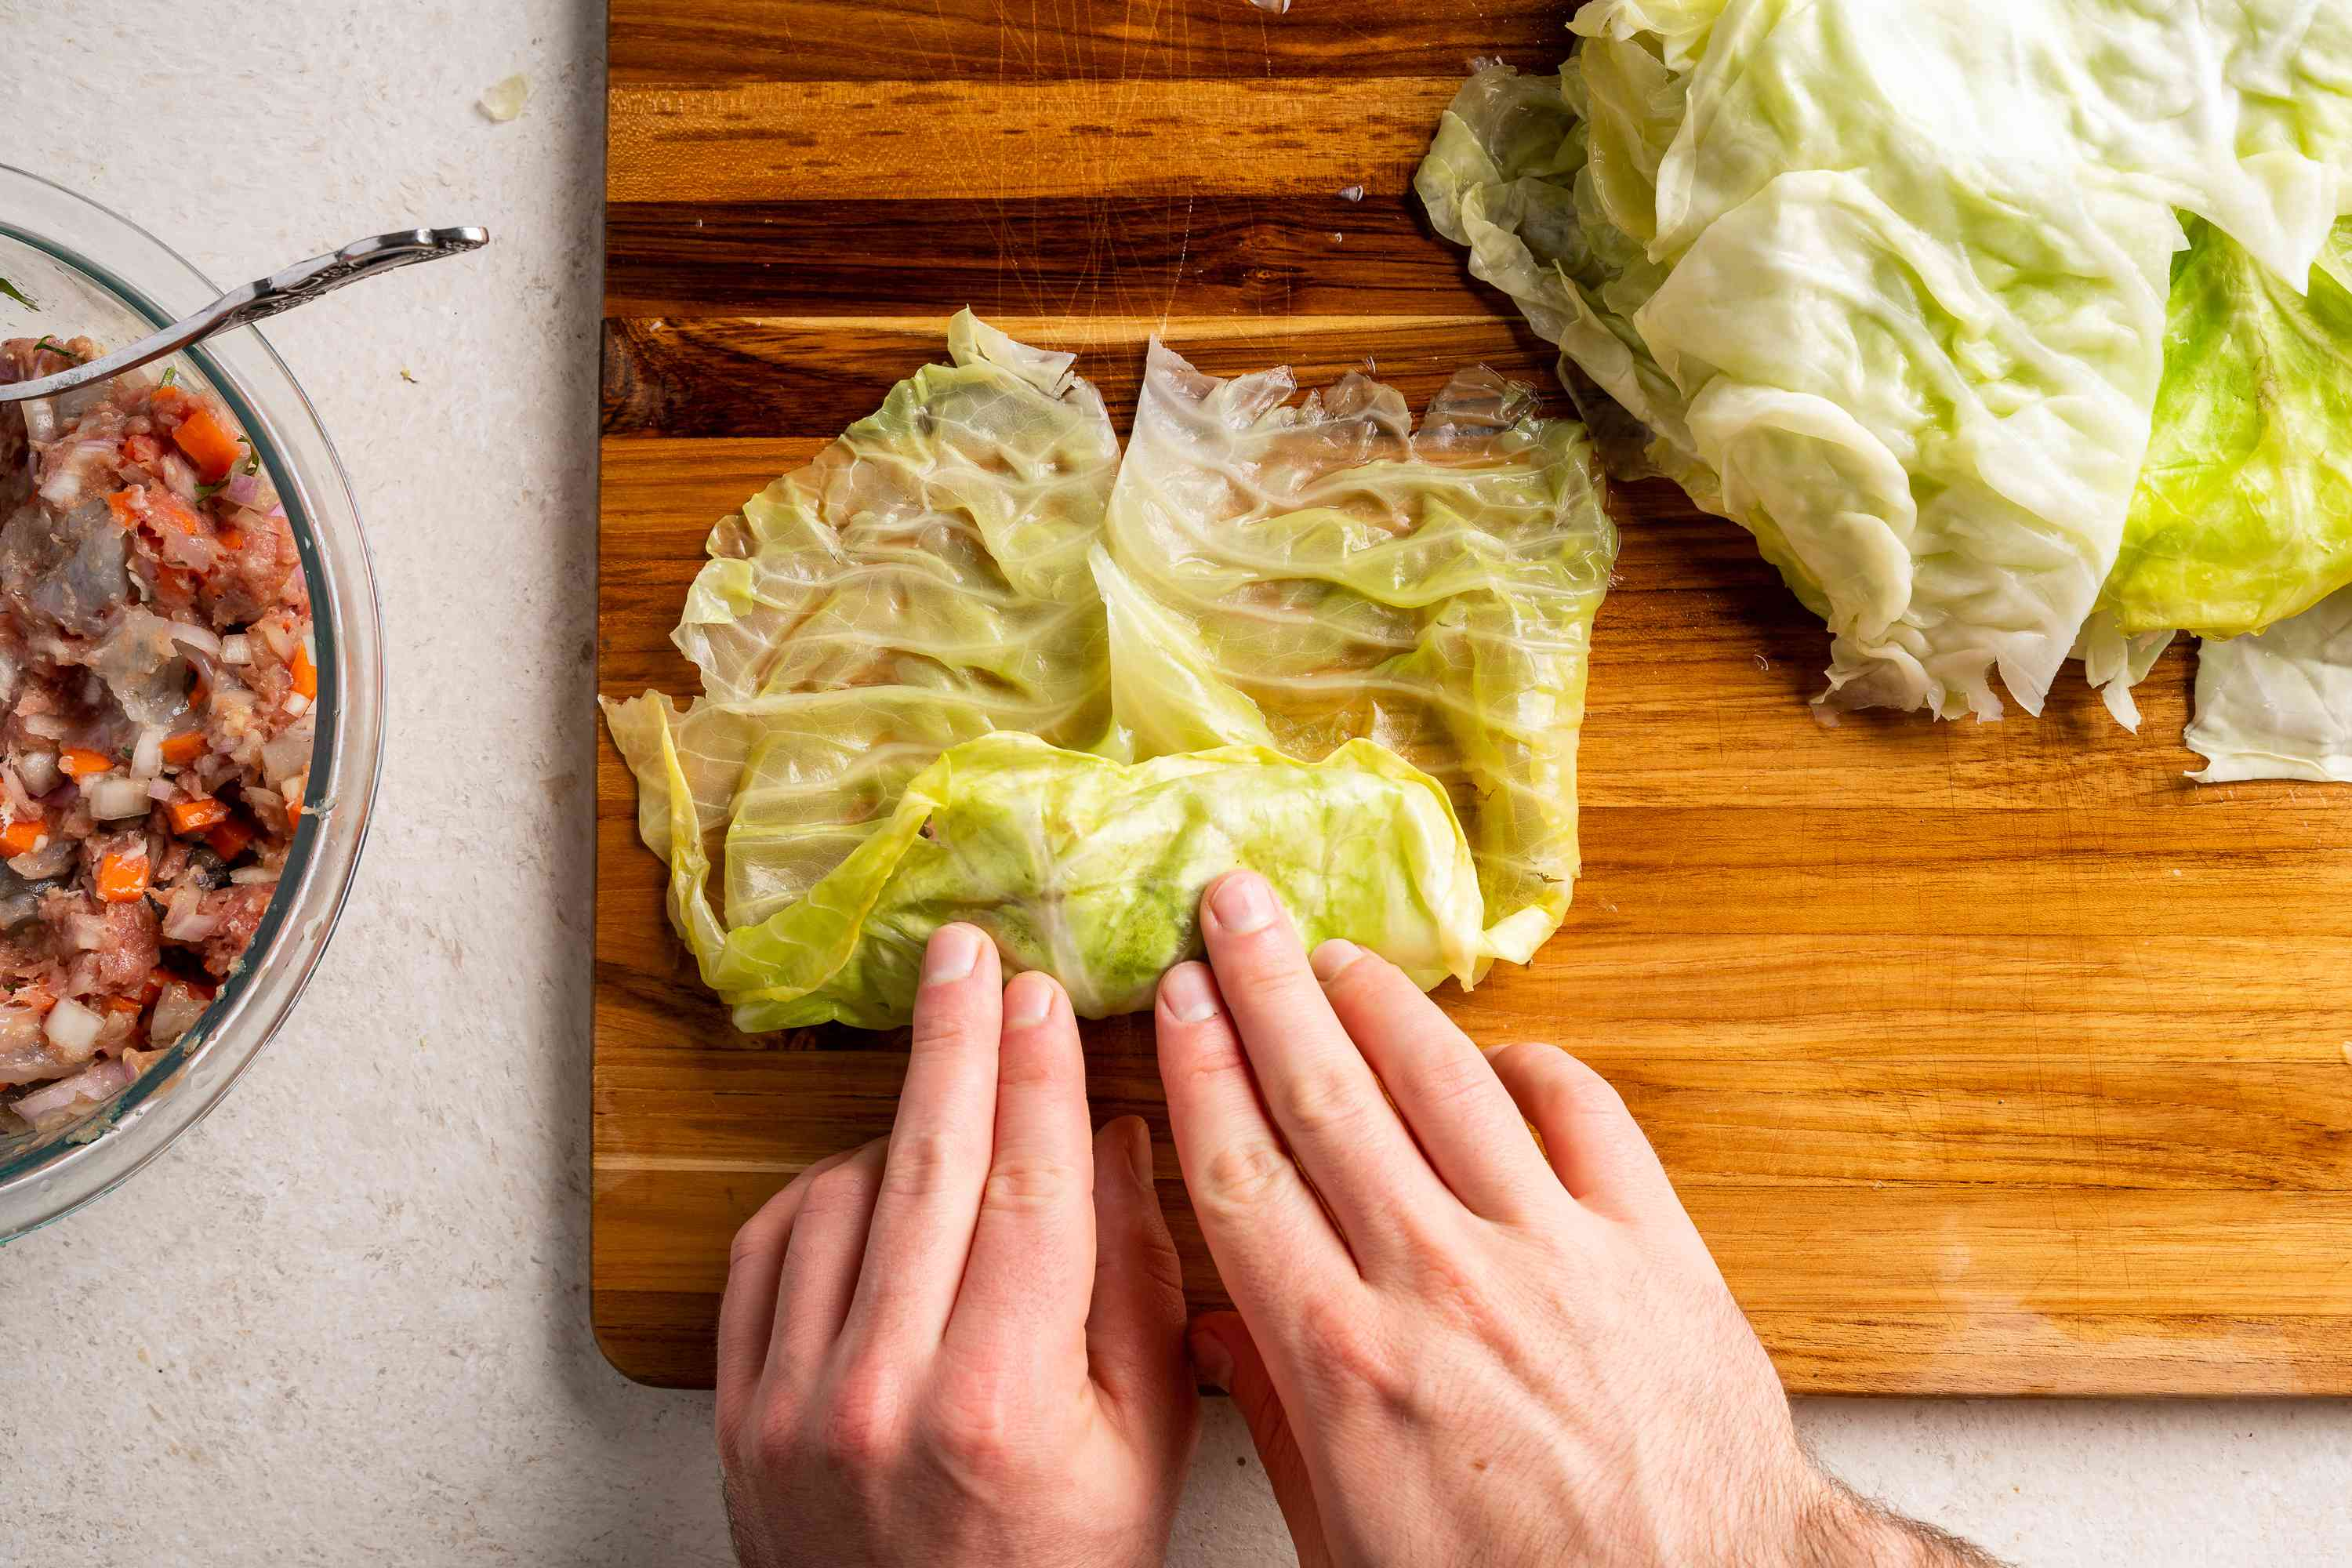 Take the cabbage edge nearest you, fold over the filling